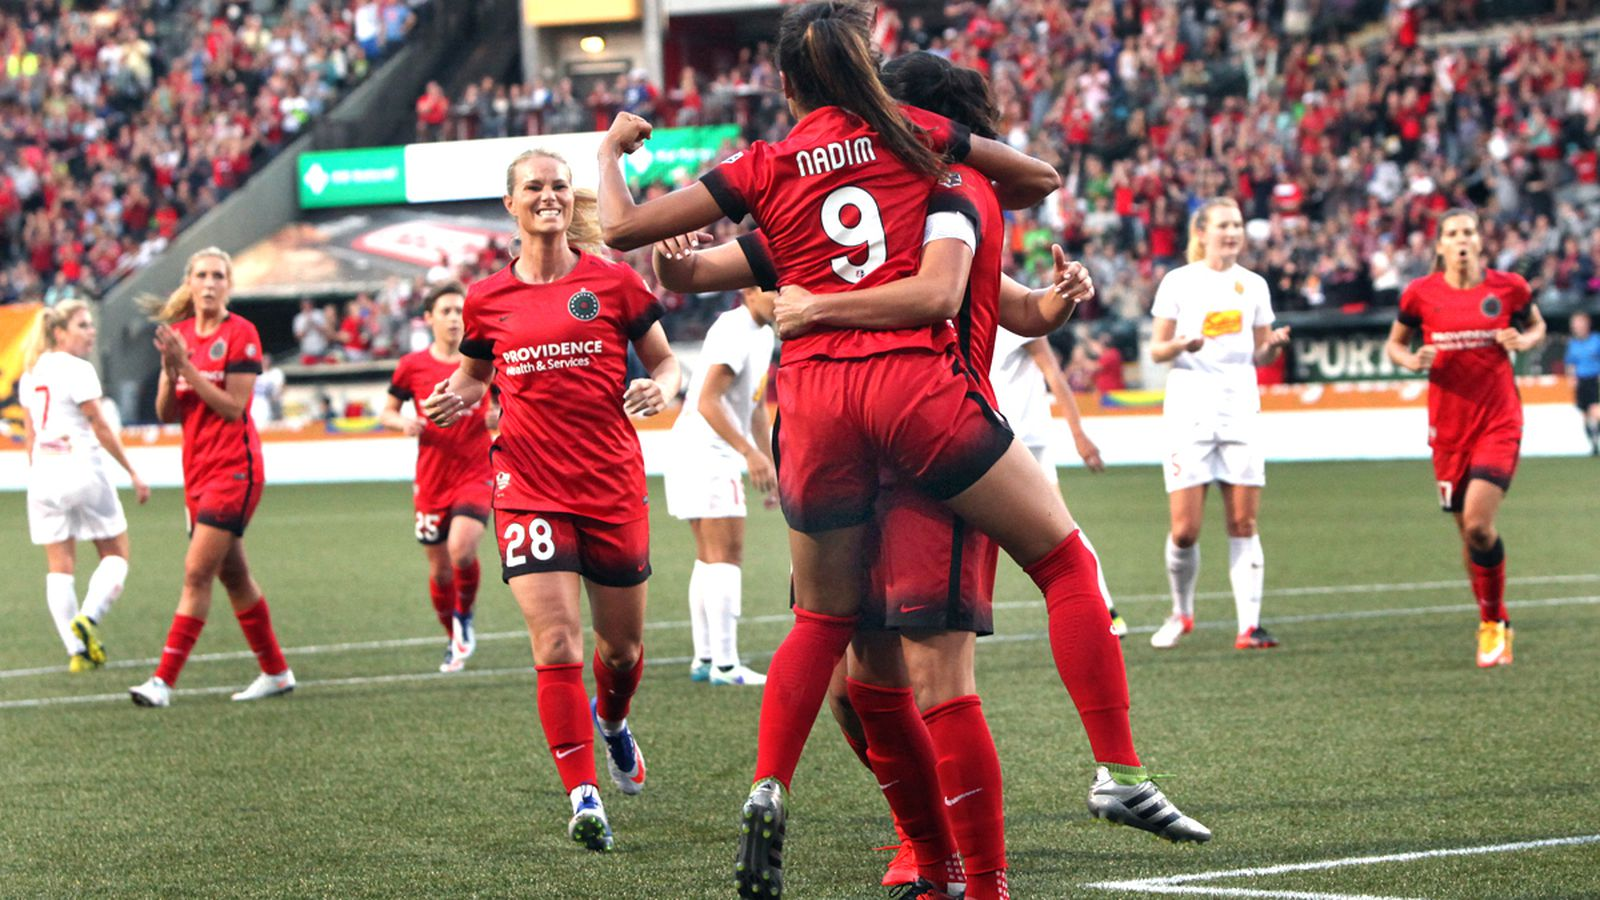 8497-sm_thorns_9_nadia_nadim_in_sinclair_s_arms_9-11-16.0.0